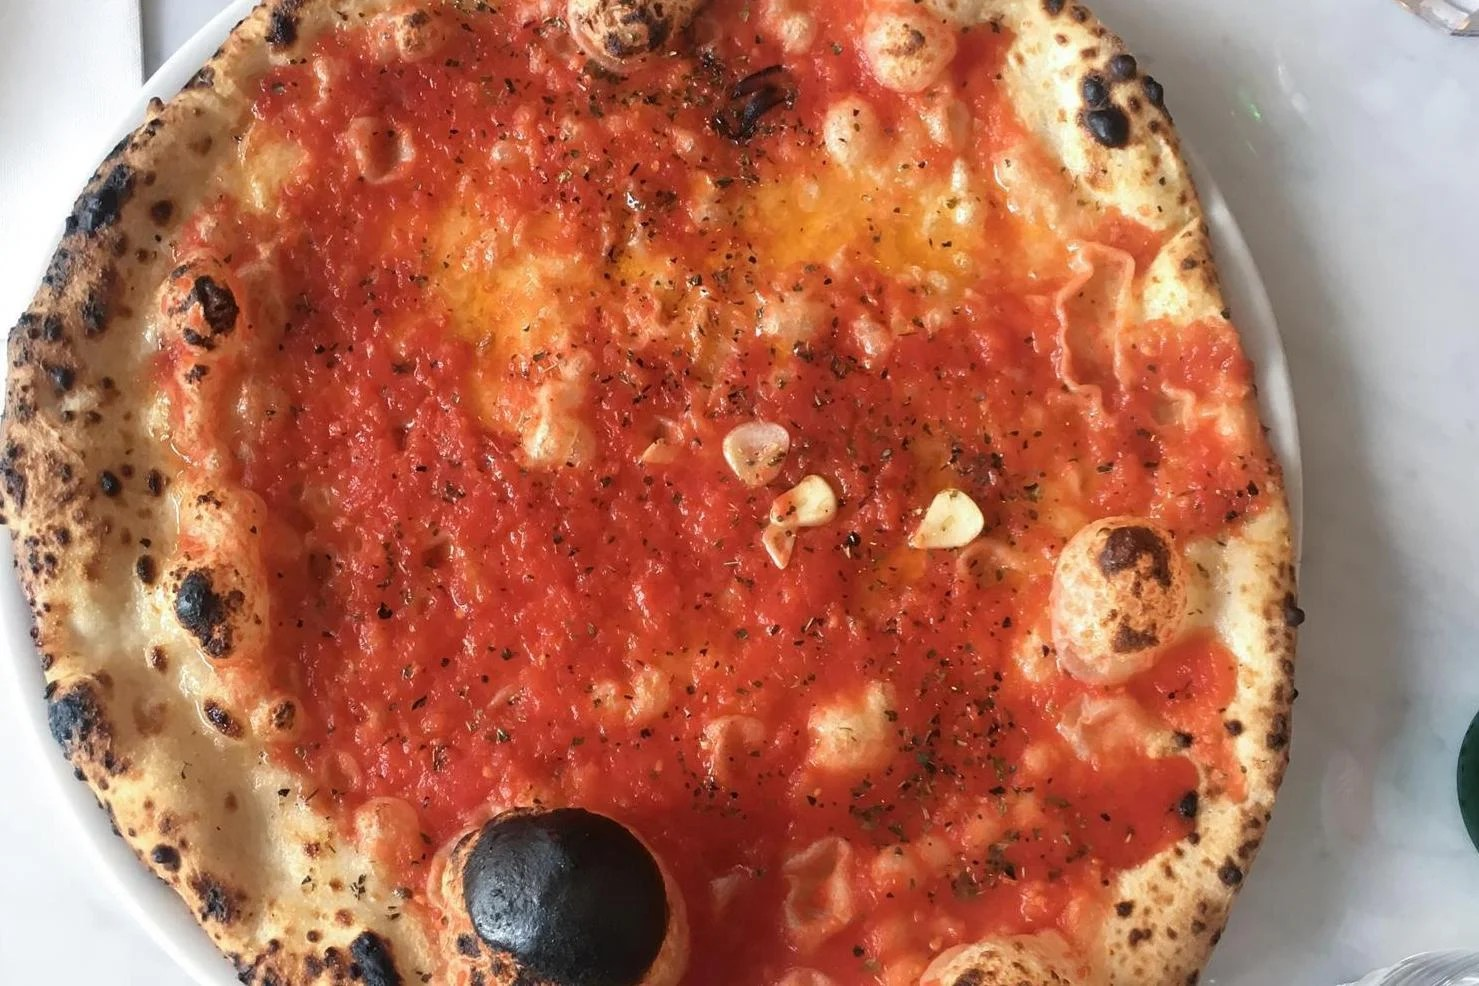 Cucina Antica Tomato Basil Uk Zia Lucia Restaurant Review Holloway Gets A Slice Of The